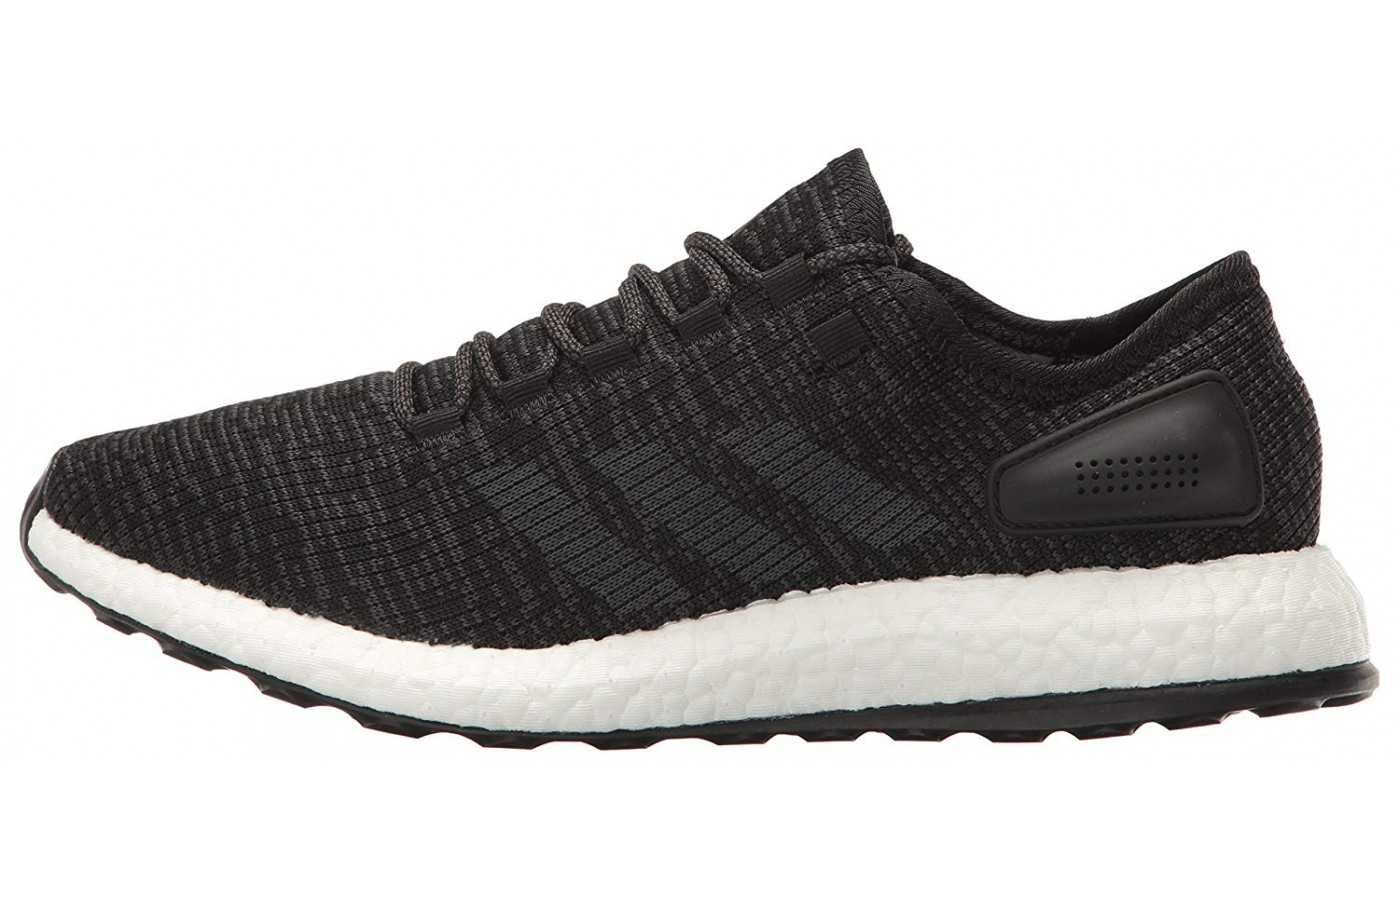 The Adidas Pure Boost